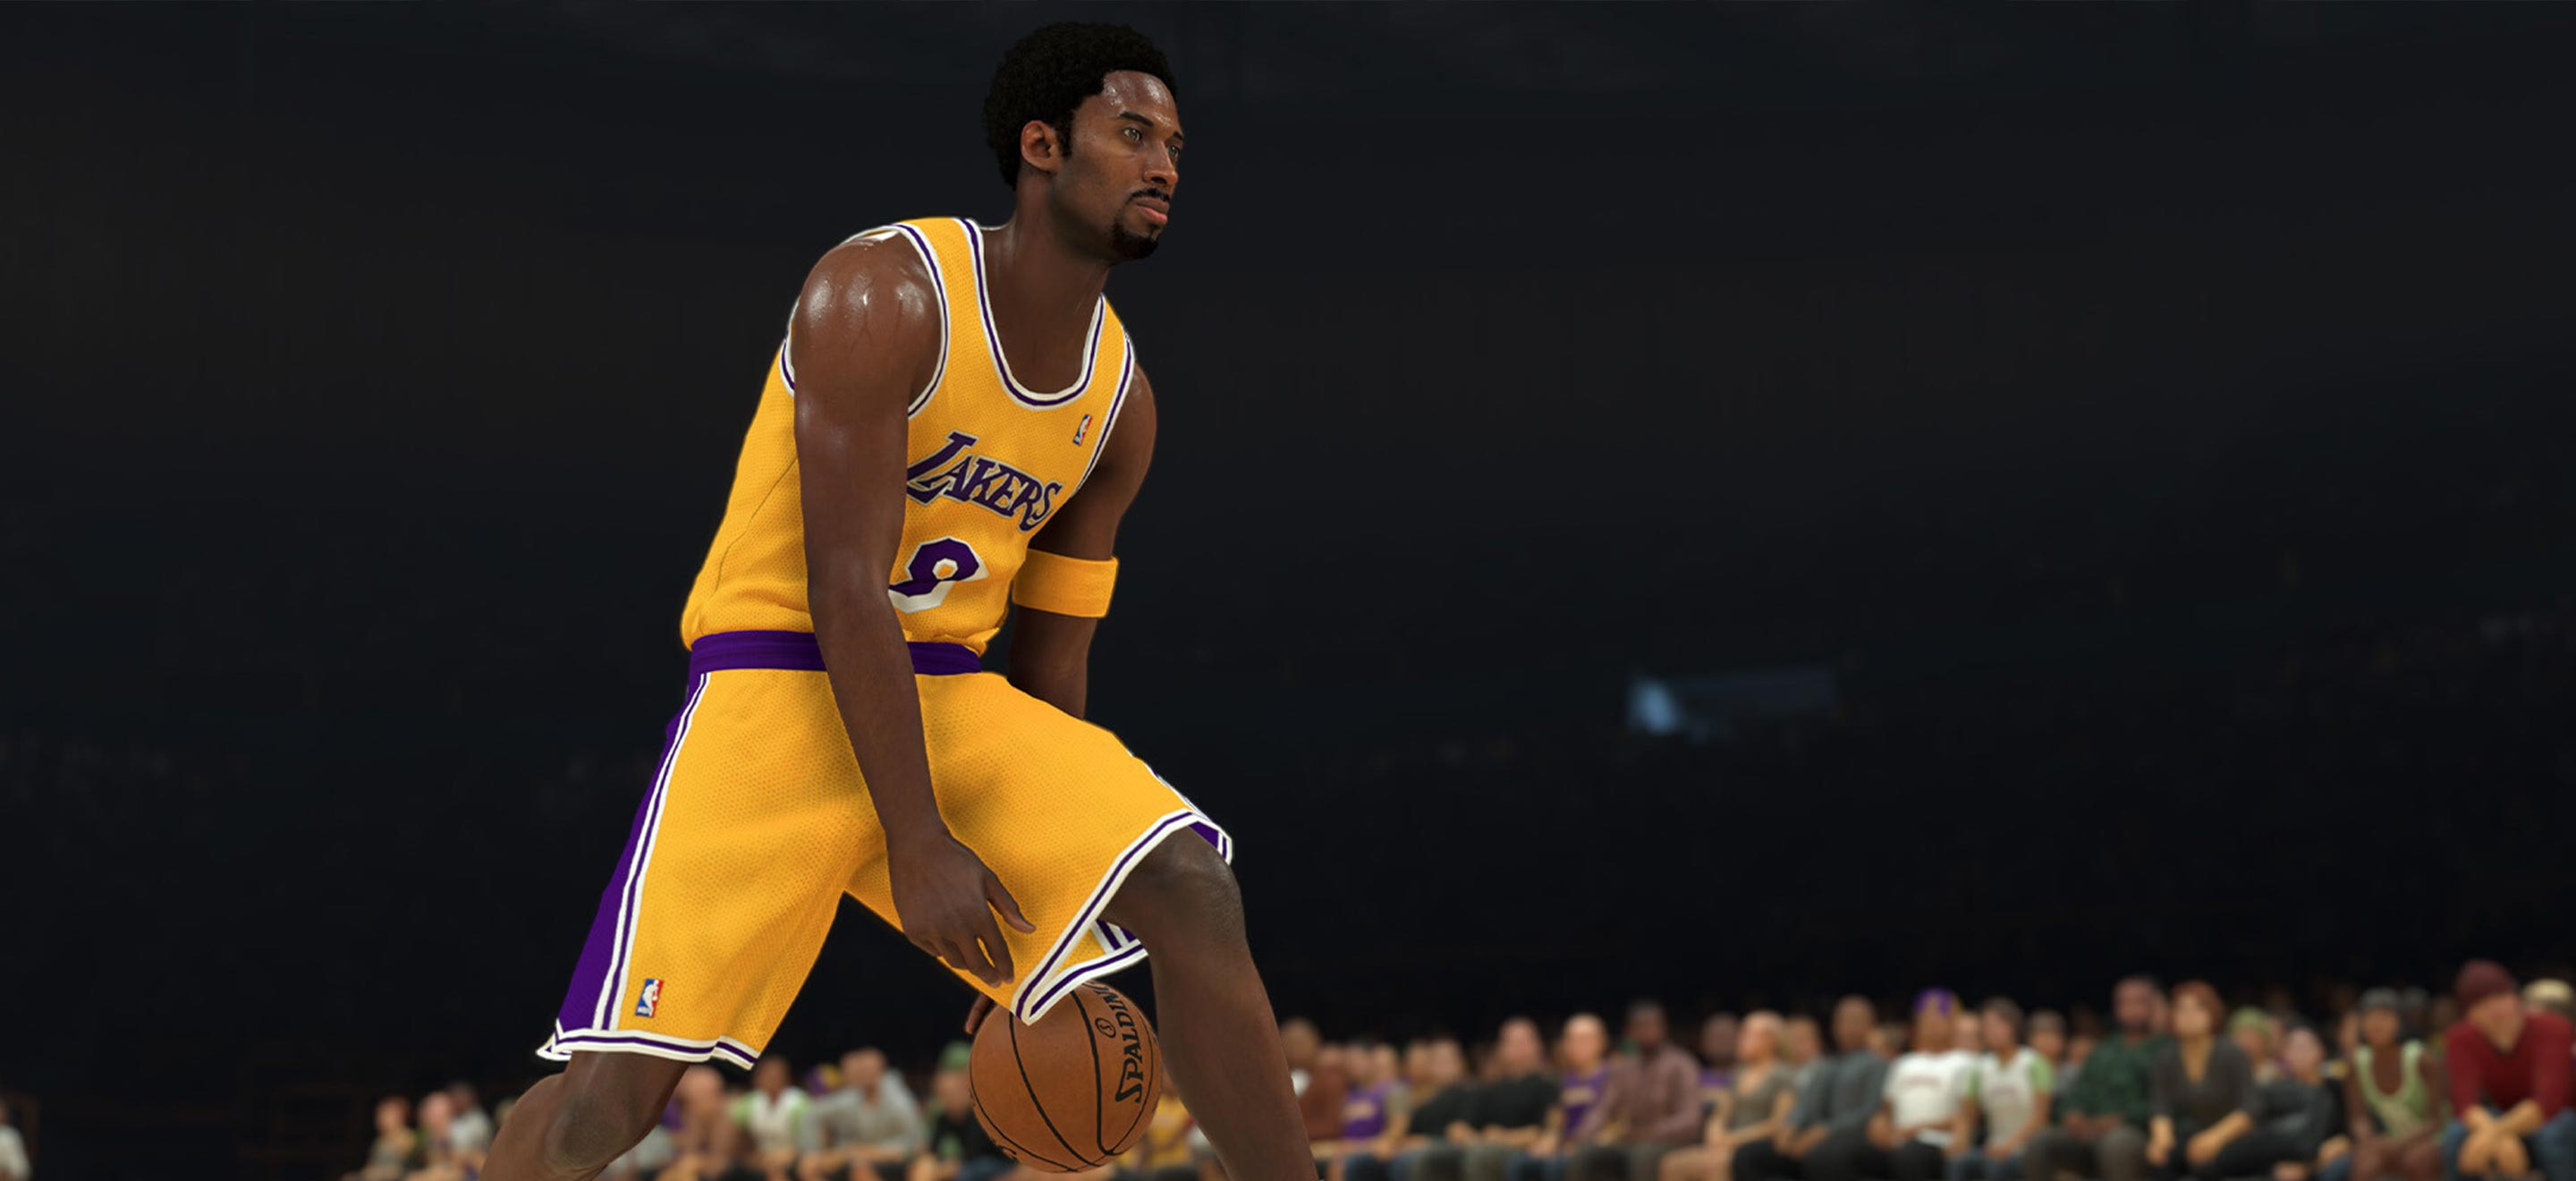 https://www.micromania.fr/on/demandware.static/-/Sites-Micromania-Library/default/dw7e47868f/fanzone/dossier/nba2k/nba-kobe.jpg